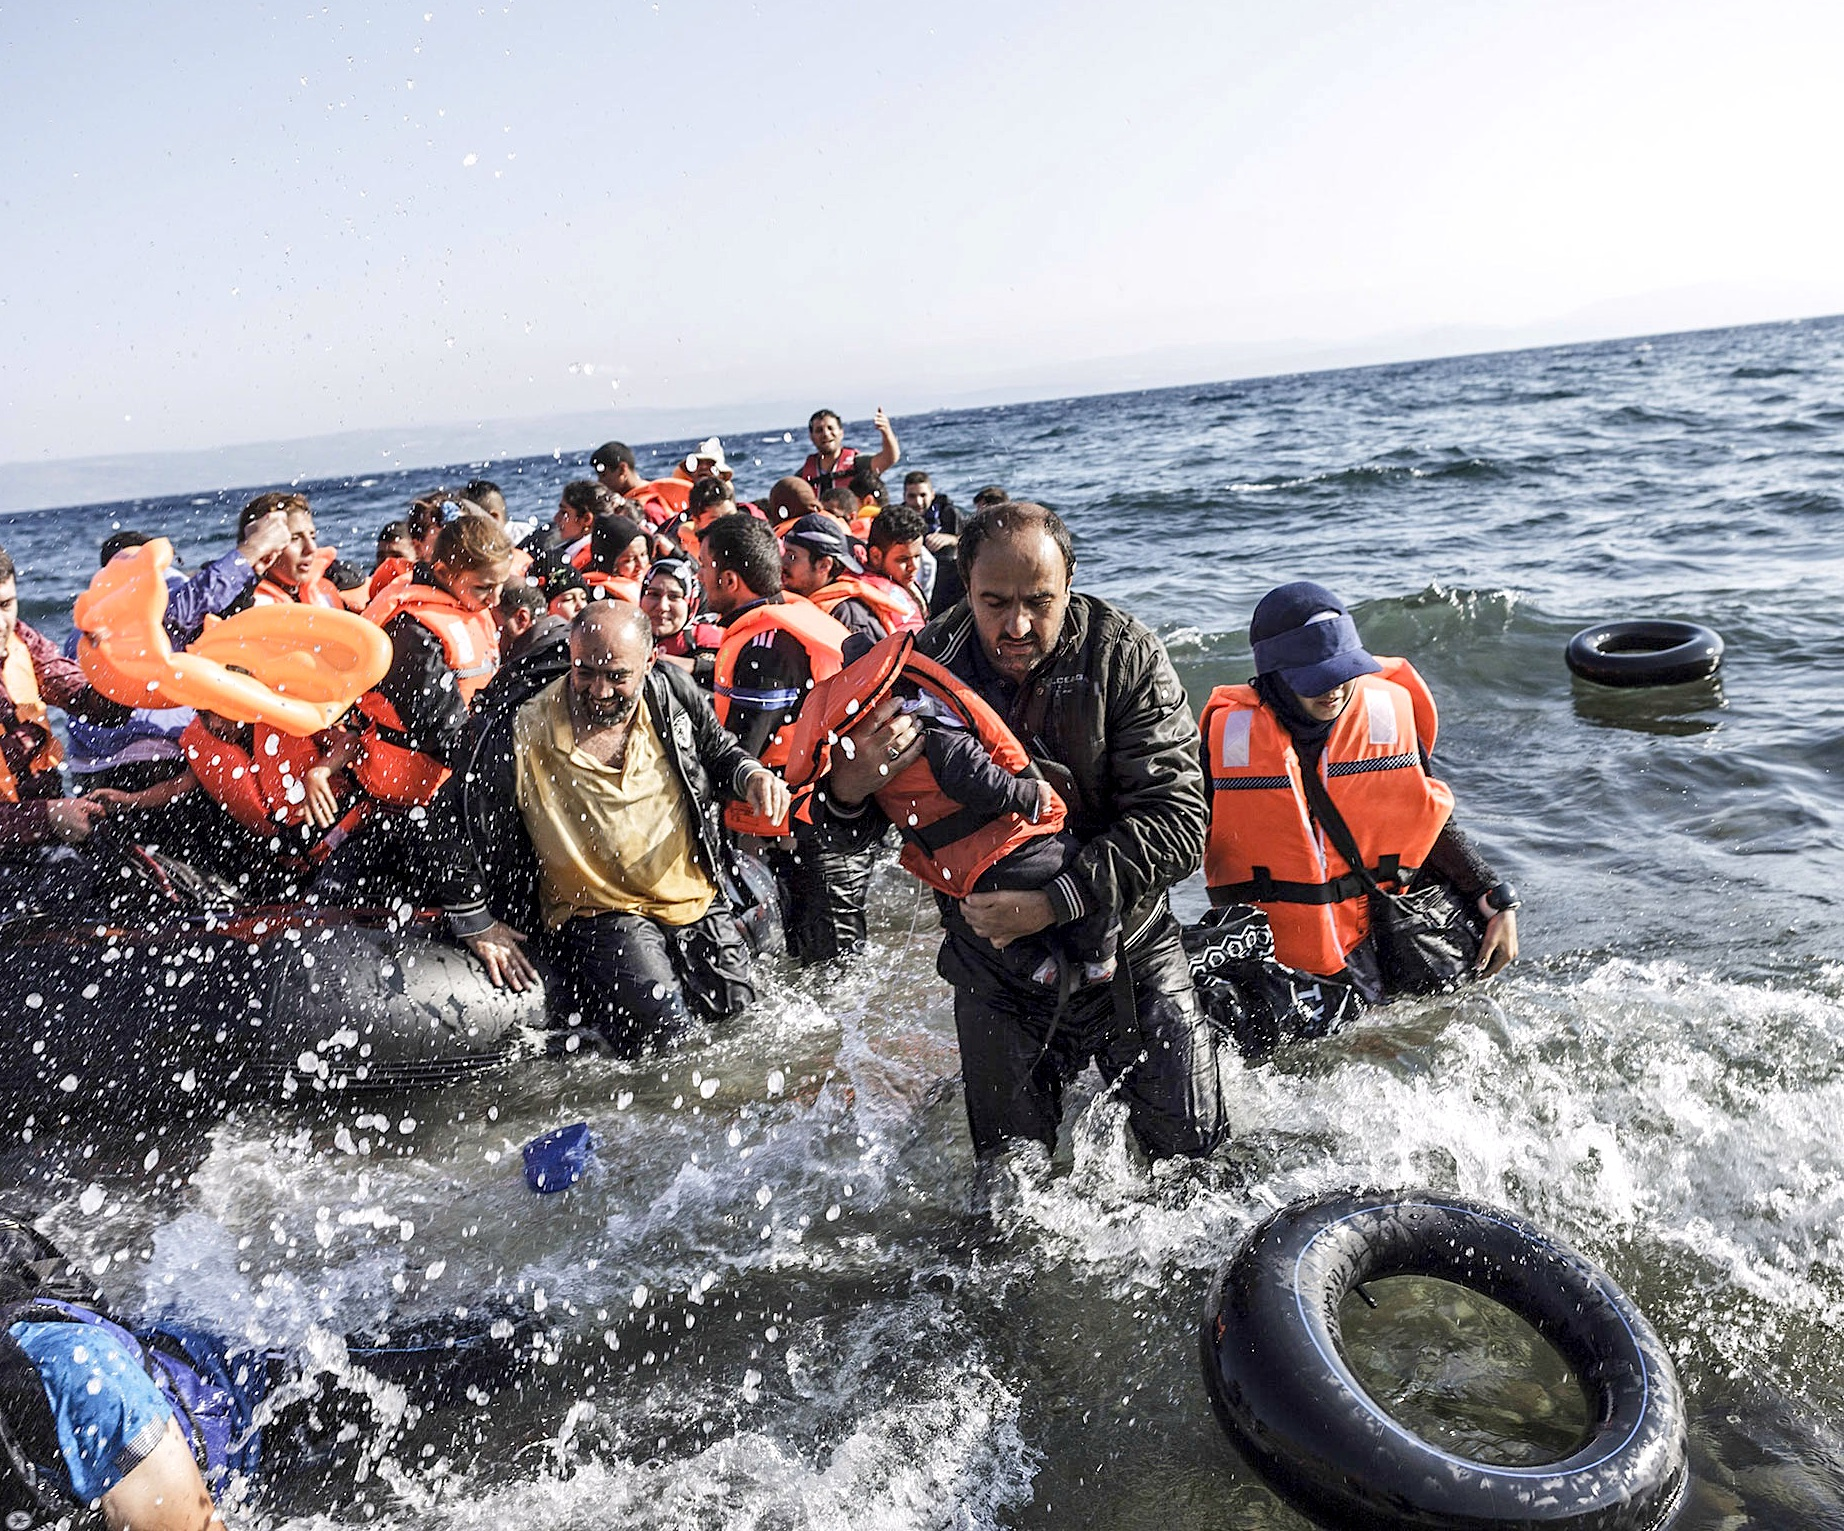 Greek migrant hotspot now EU's 'worst rights issue'